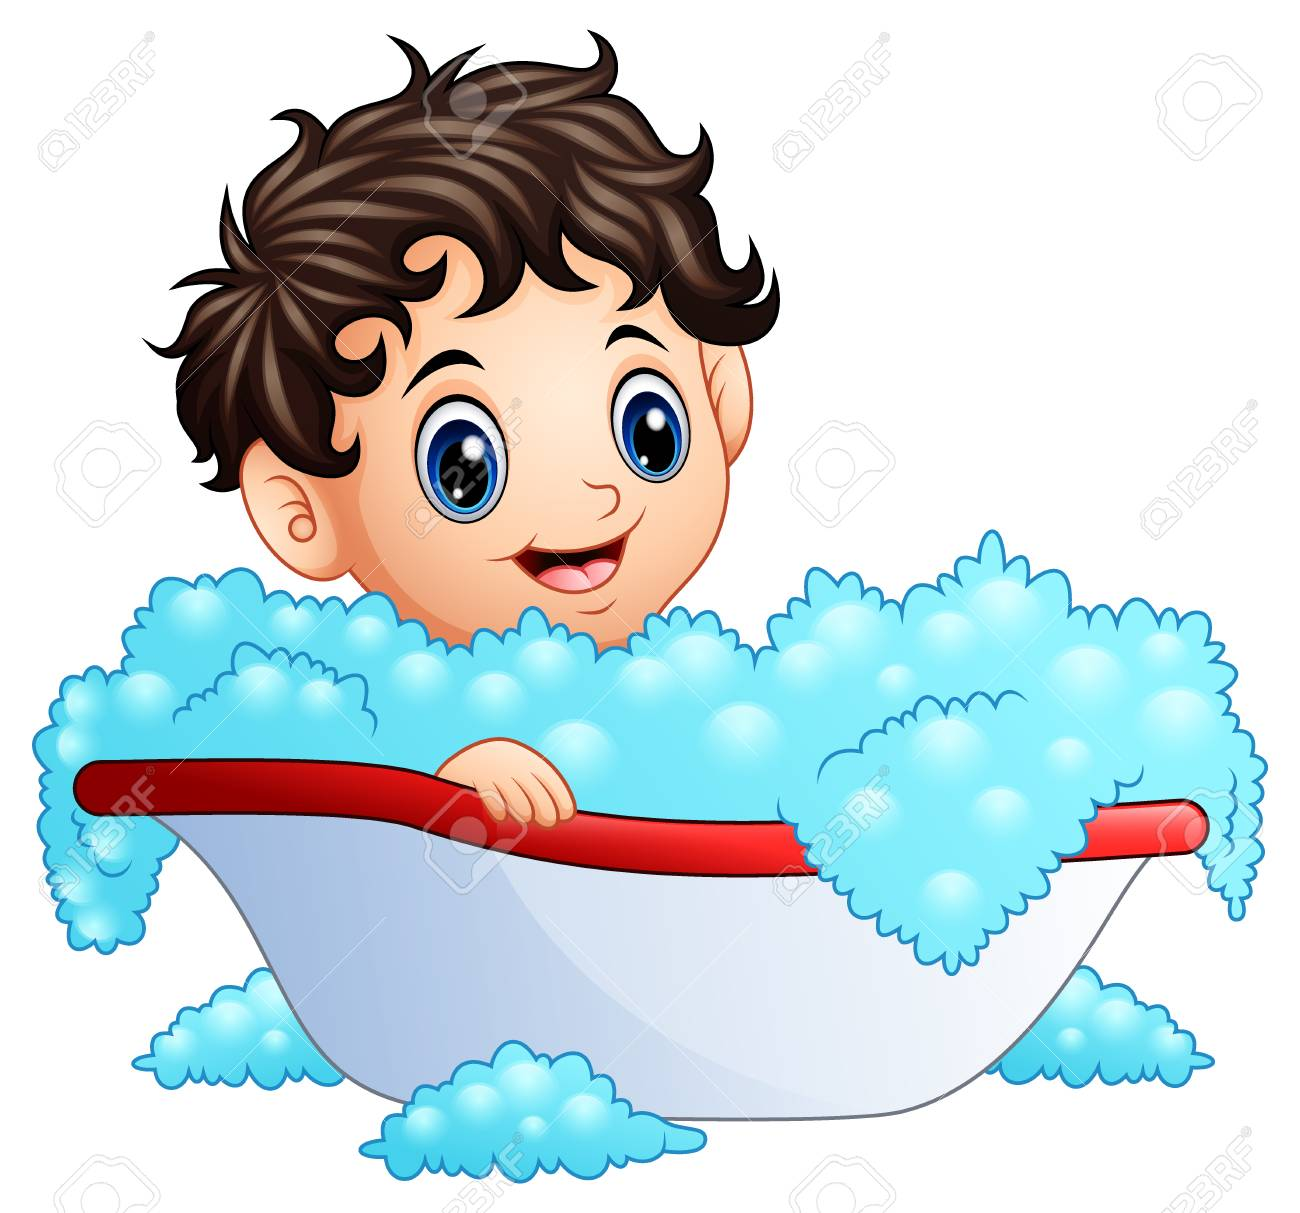 Vector Illustration Of Cute Little Boy Taking A Bath On A White Royalty Free Cliparts Vectors And Stock Illustration Image 95062044